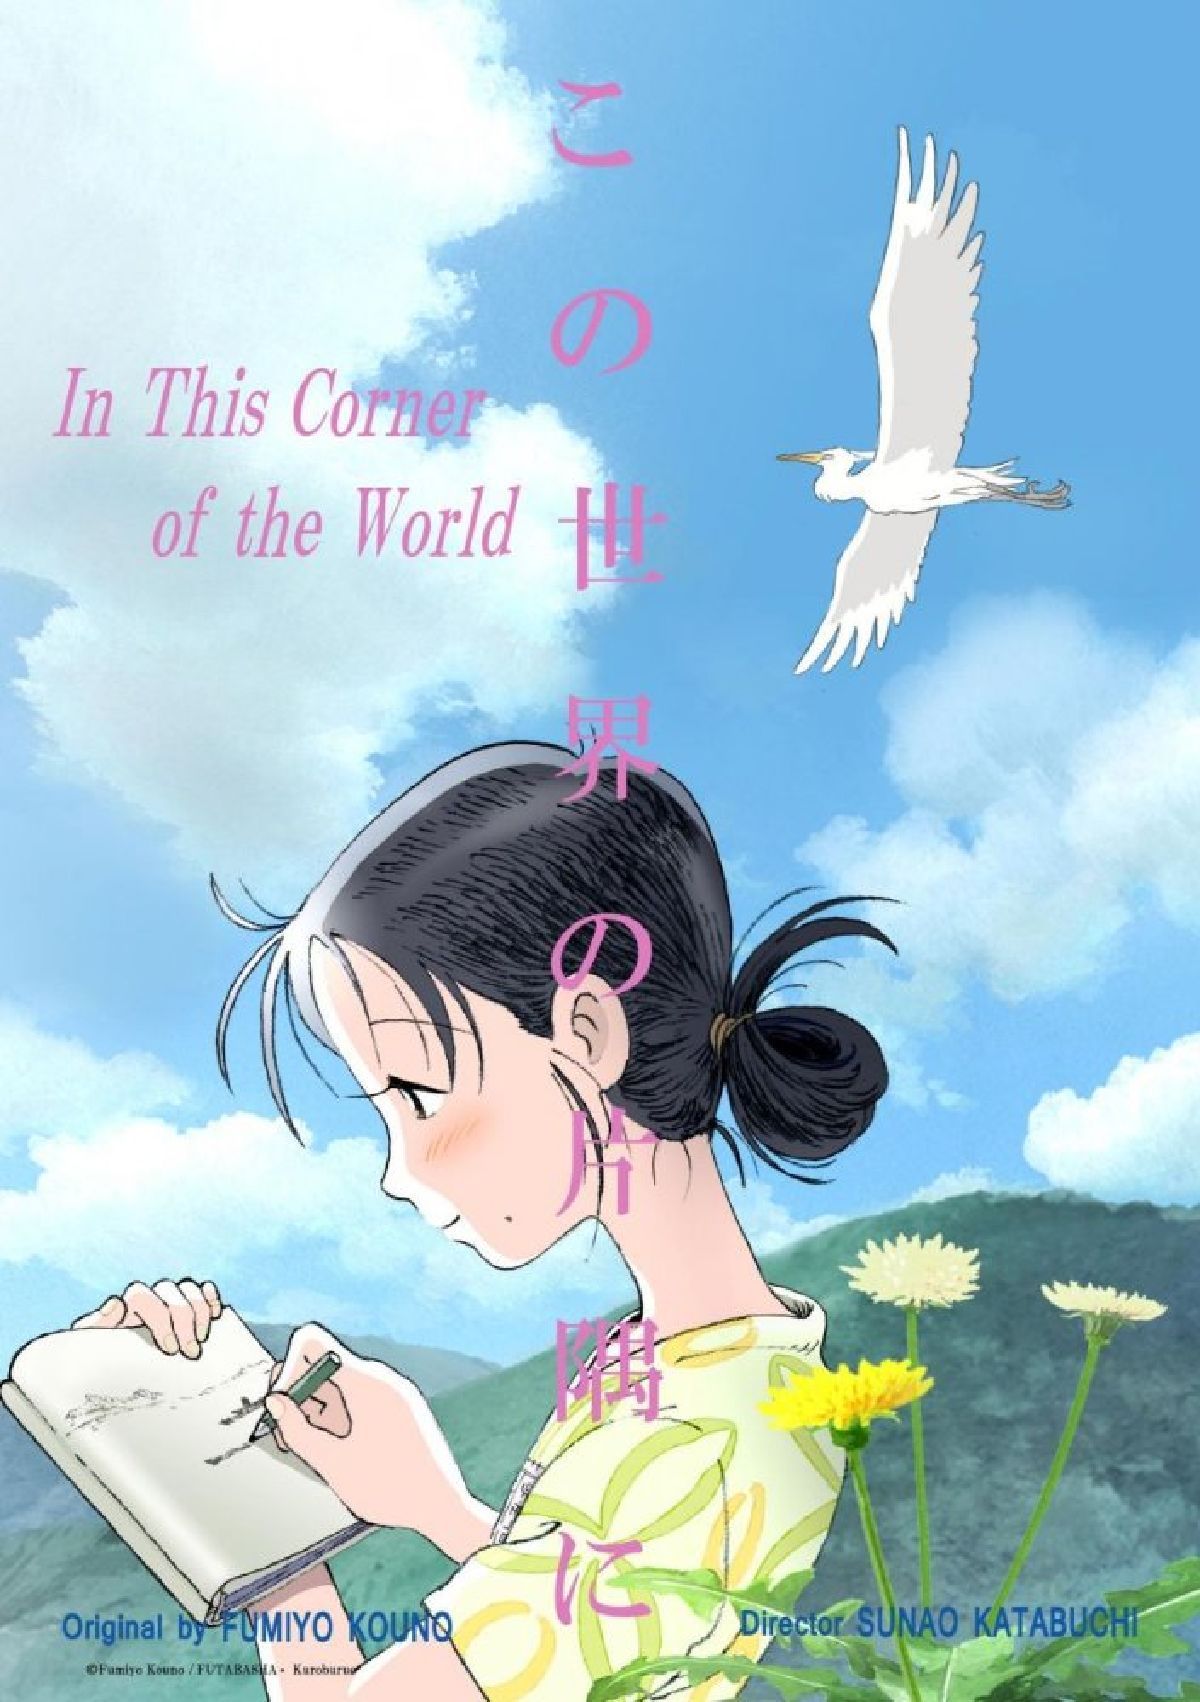 'In This Corner of the World' movie poster